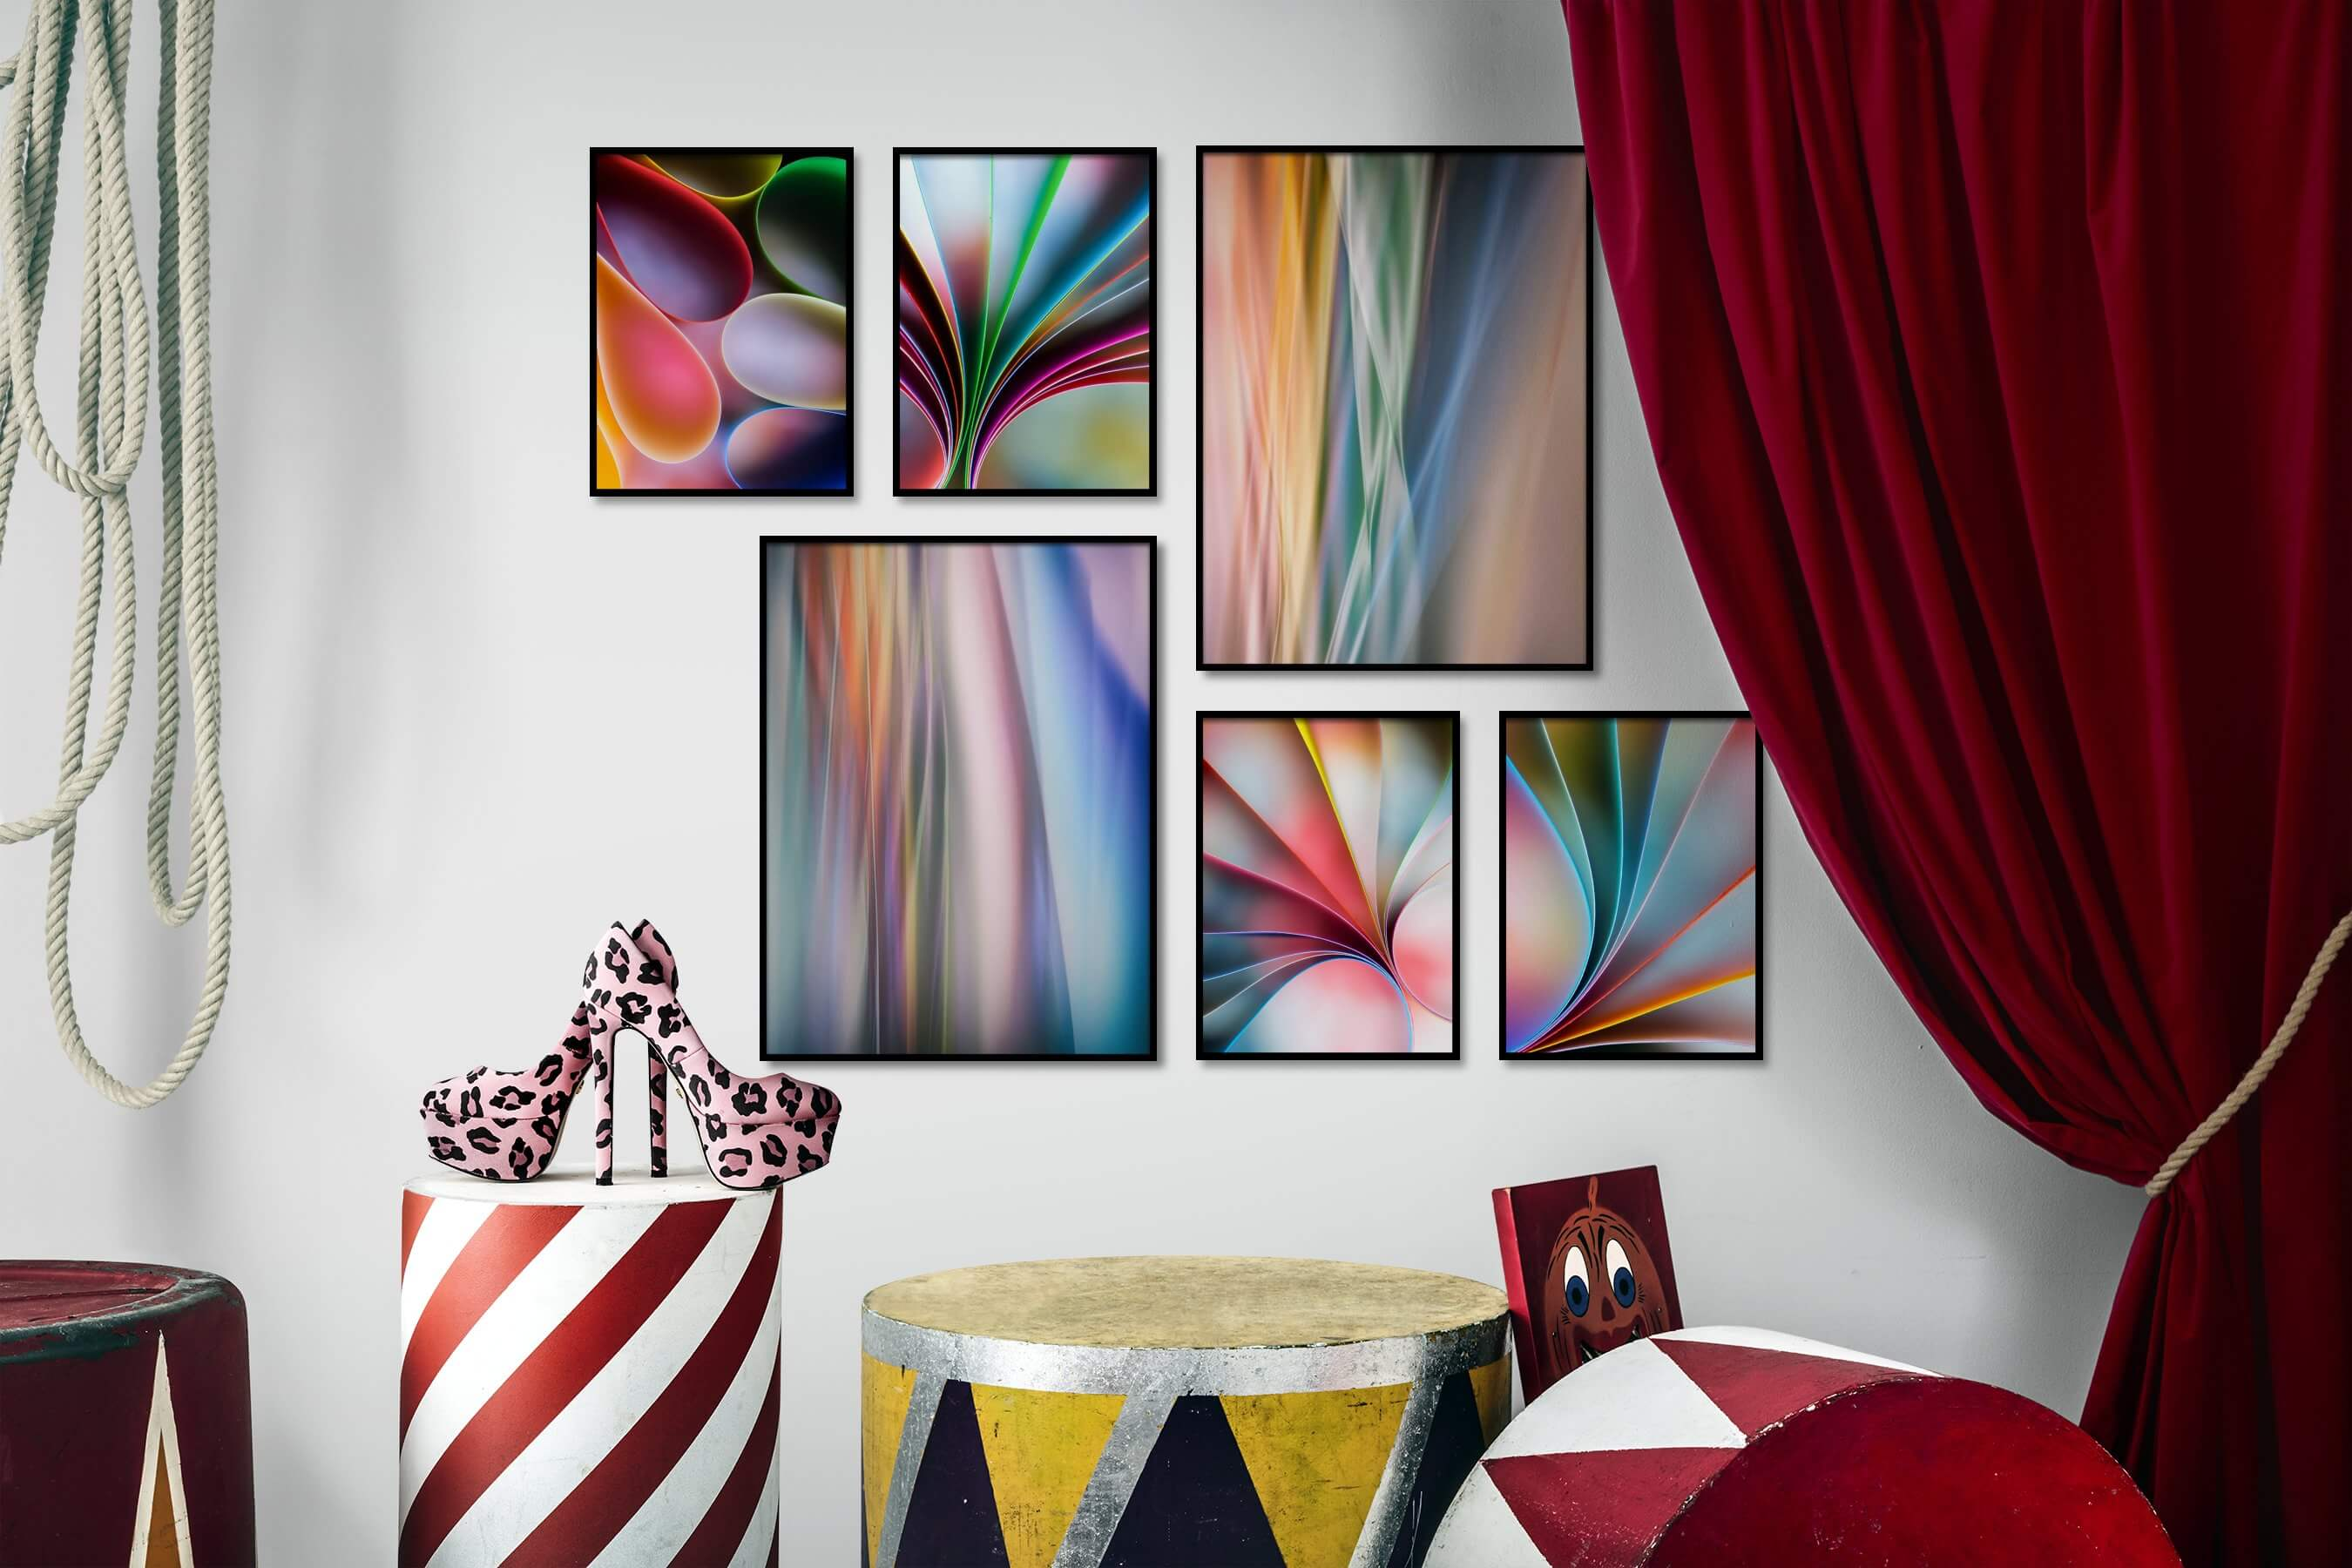 Gallery wall idea with six framed pictures arranged on a wall depicting Colorful and For the Moderate